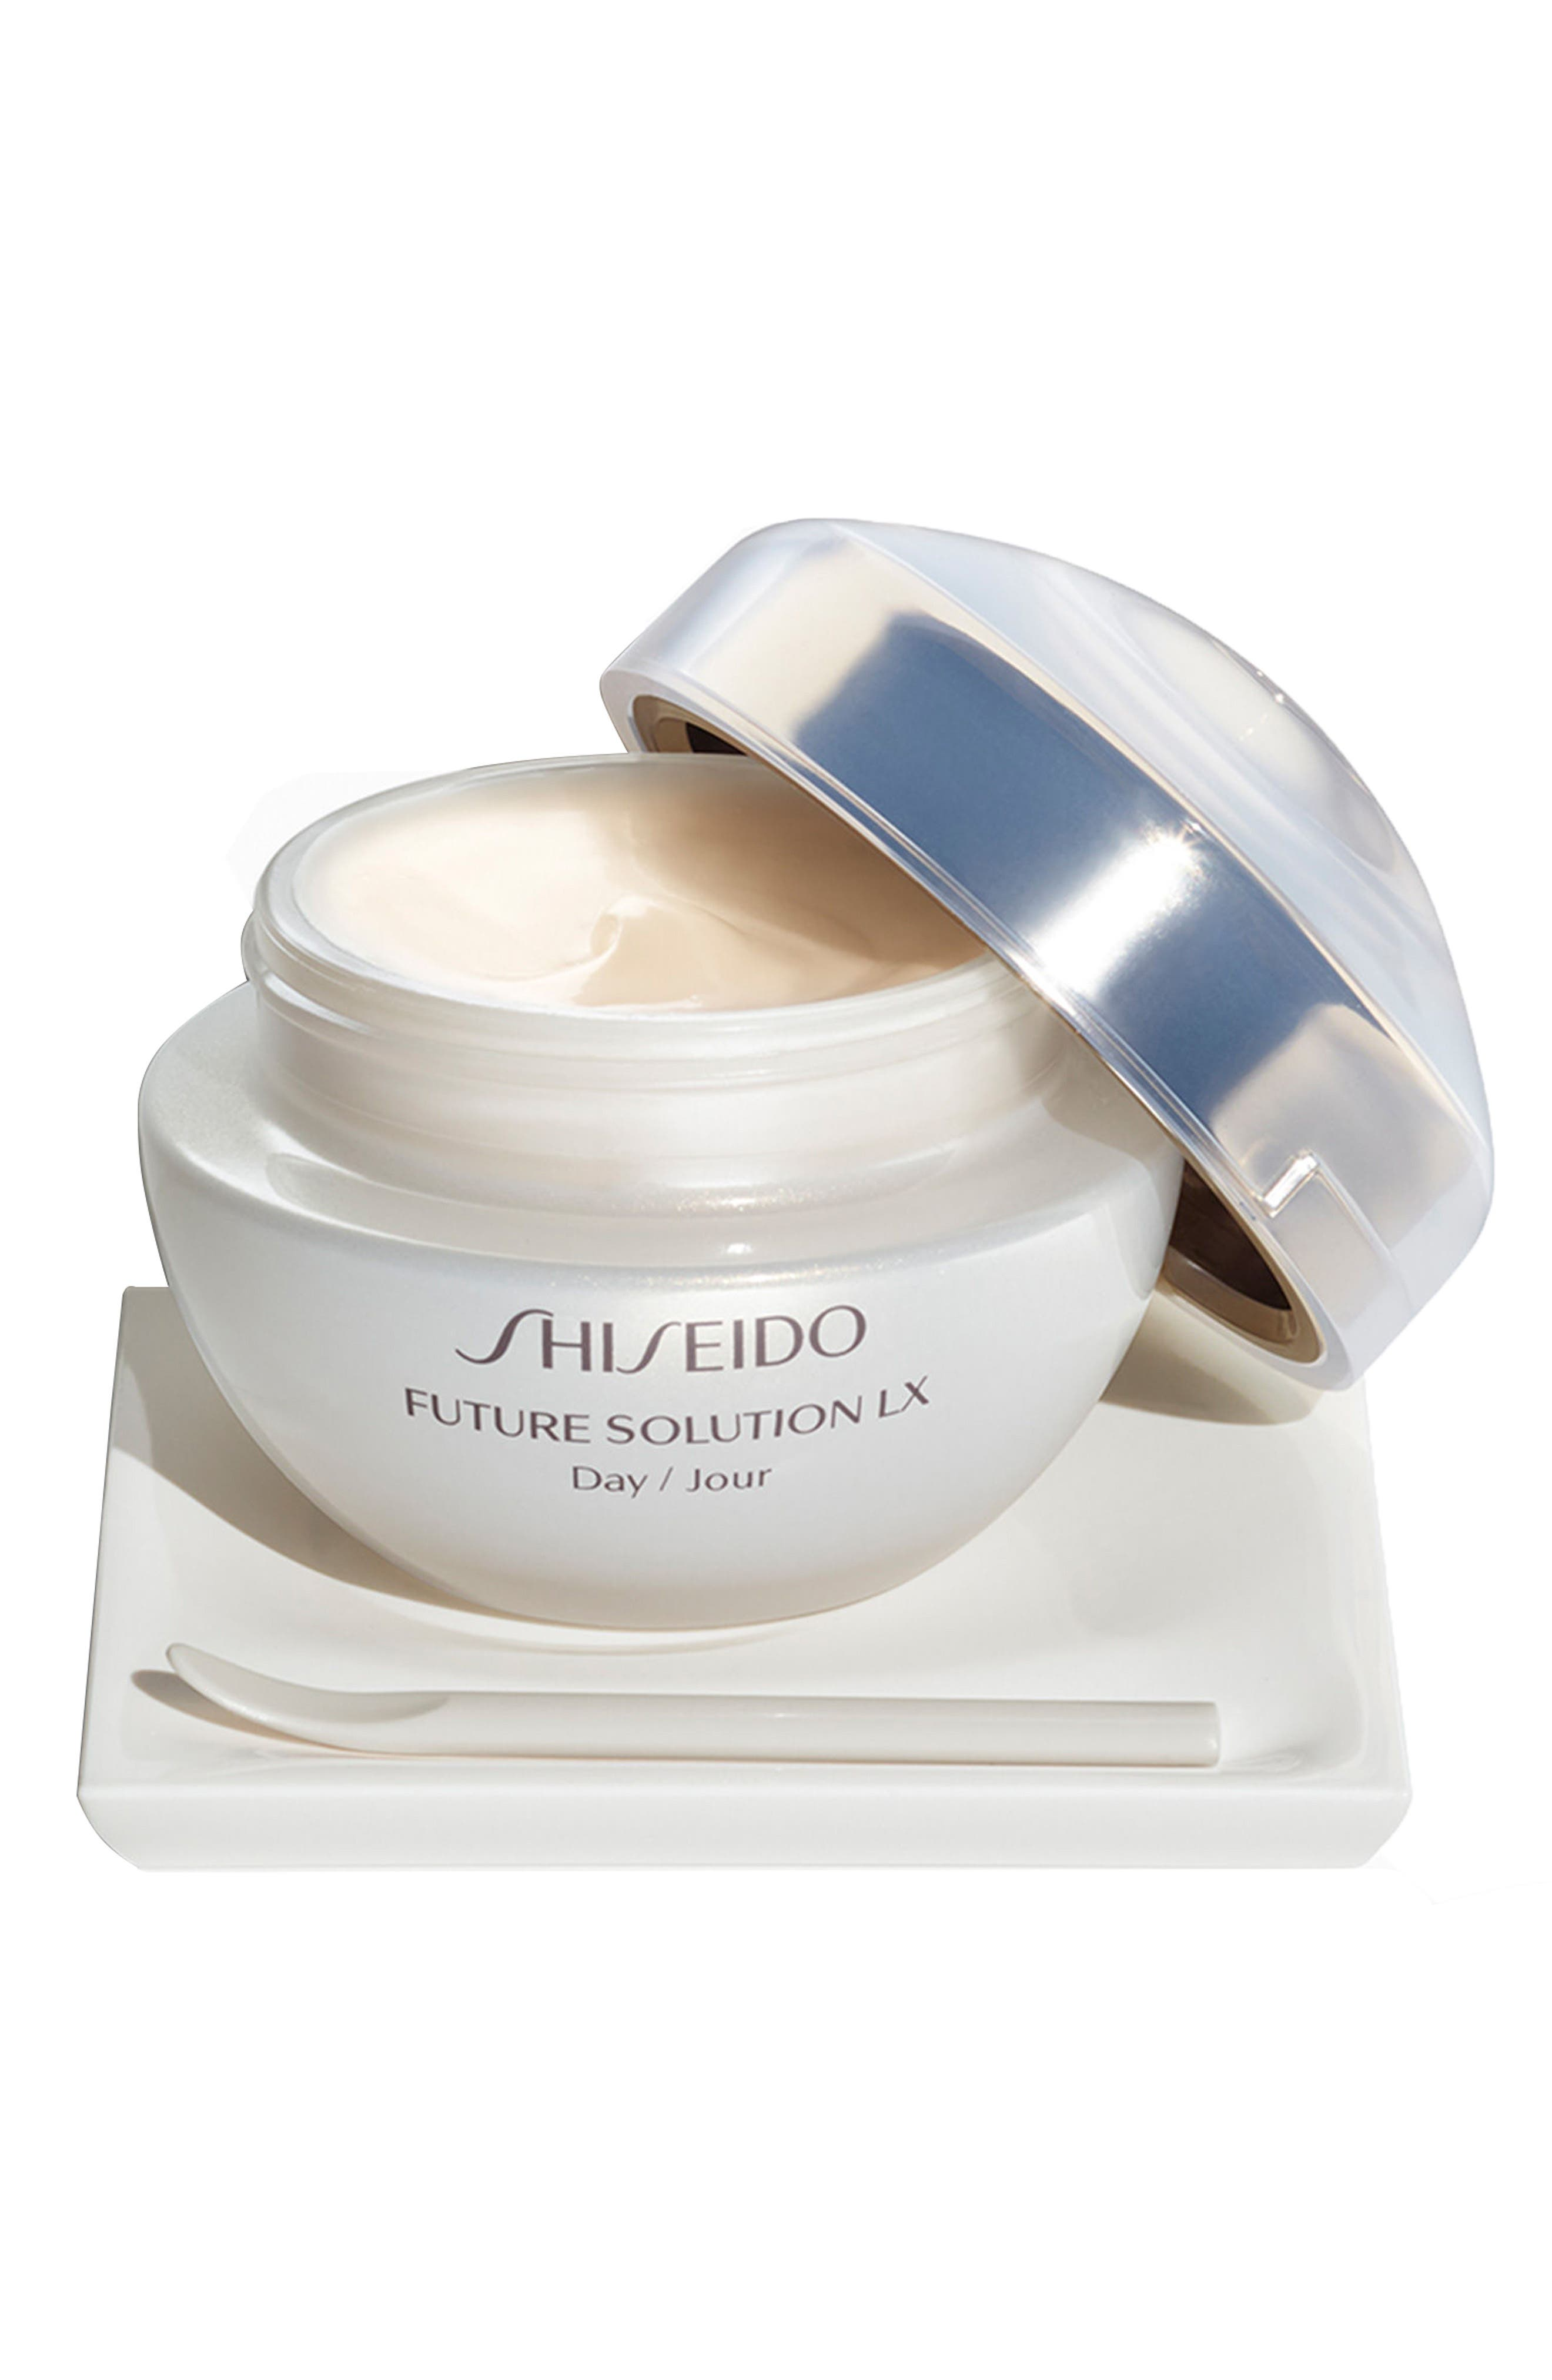 Shiseido Future Solution LX Total Protective Cream Broad Spectrum SPF 20 Sunscreen (Nordstrom Exclusive)